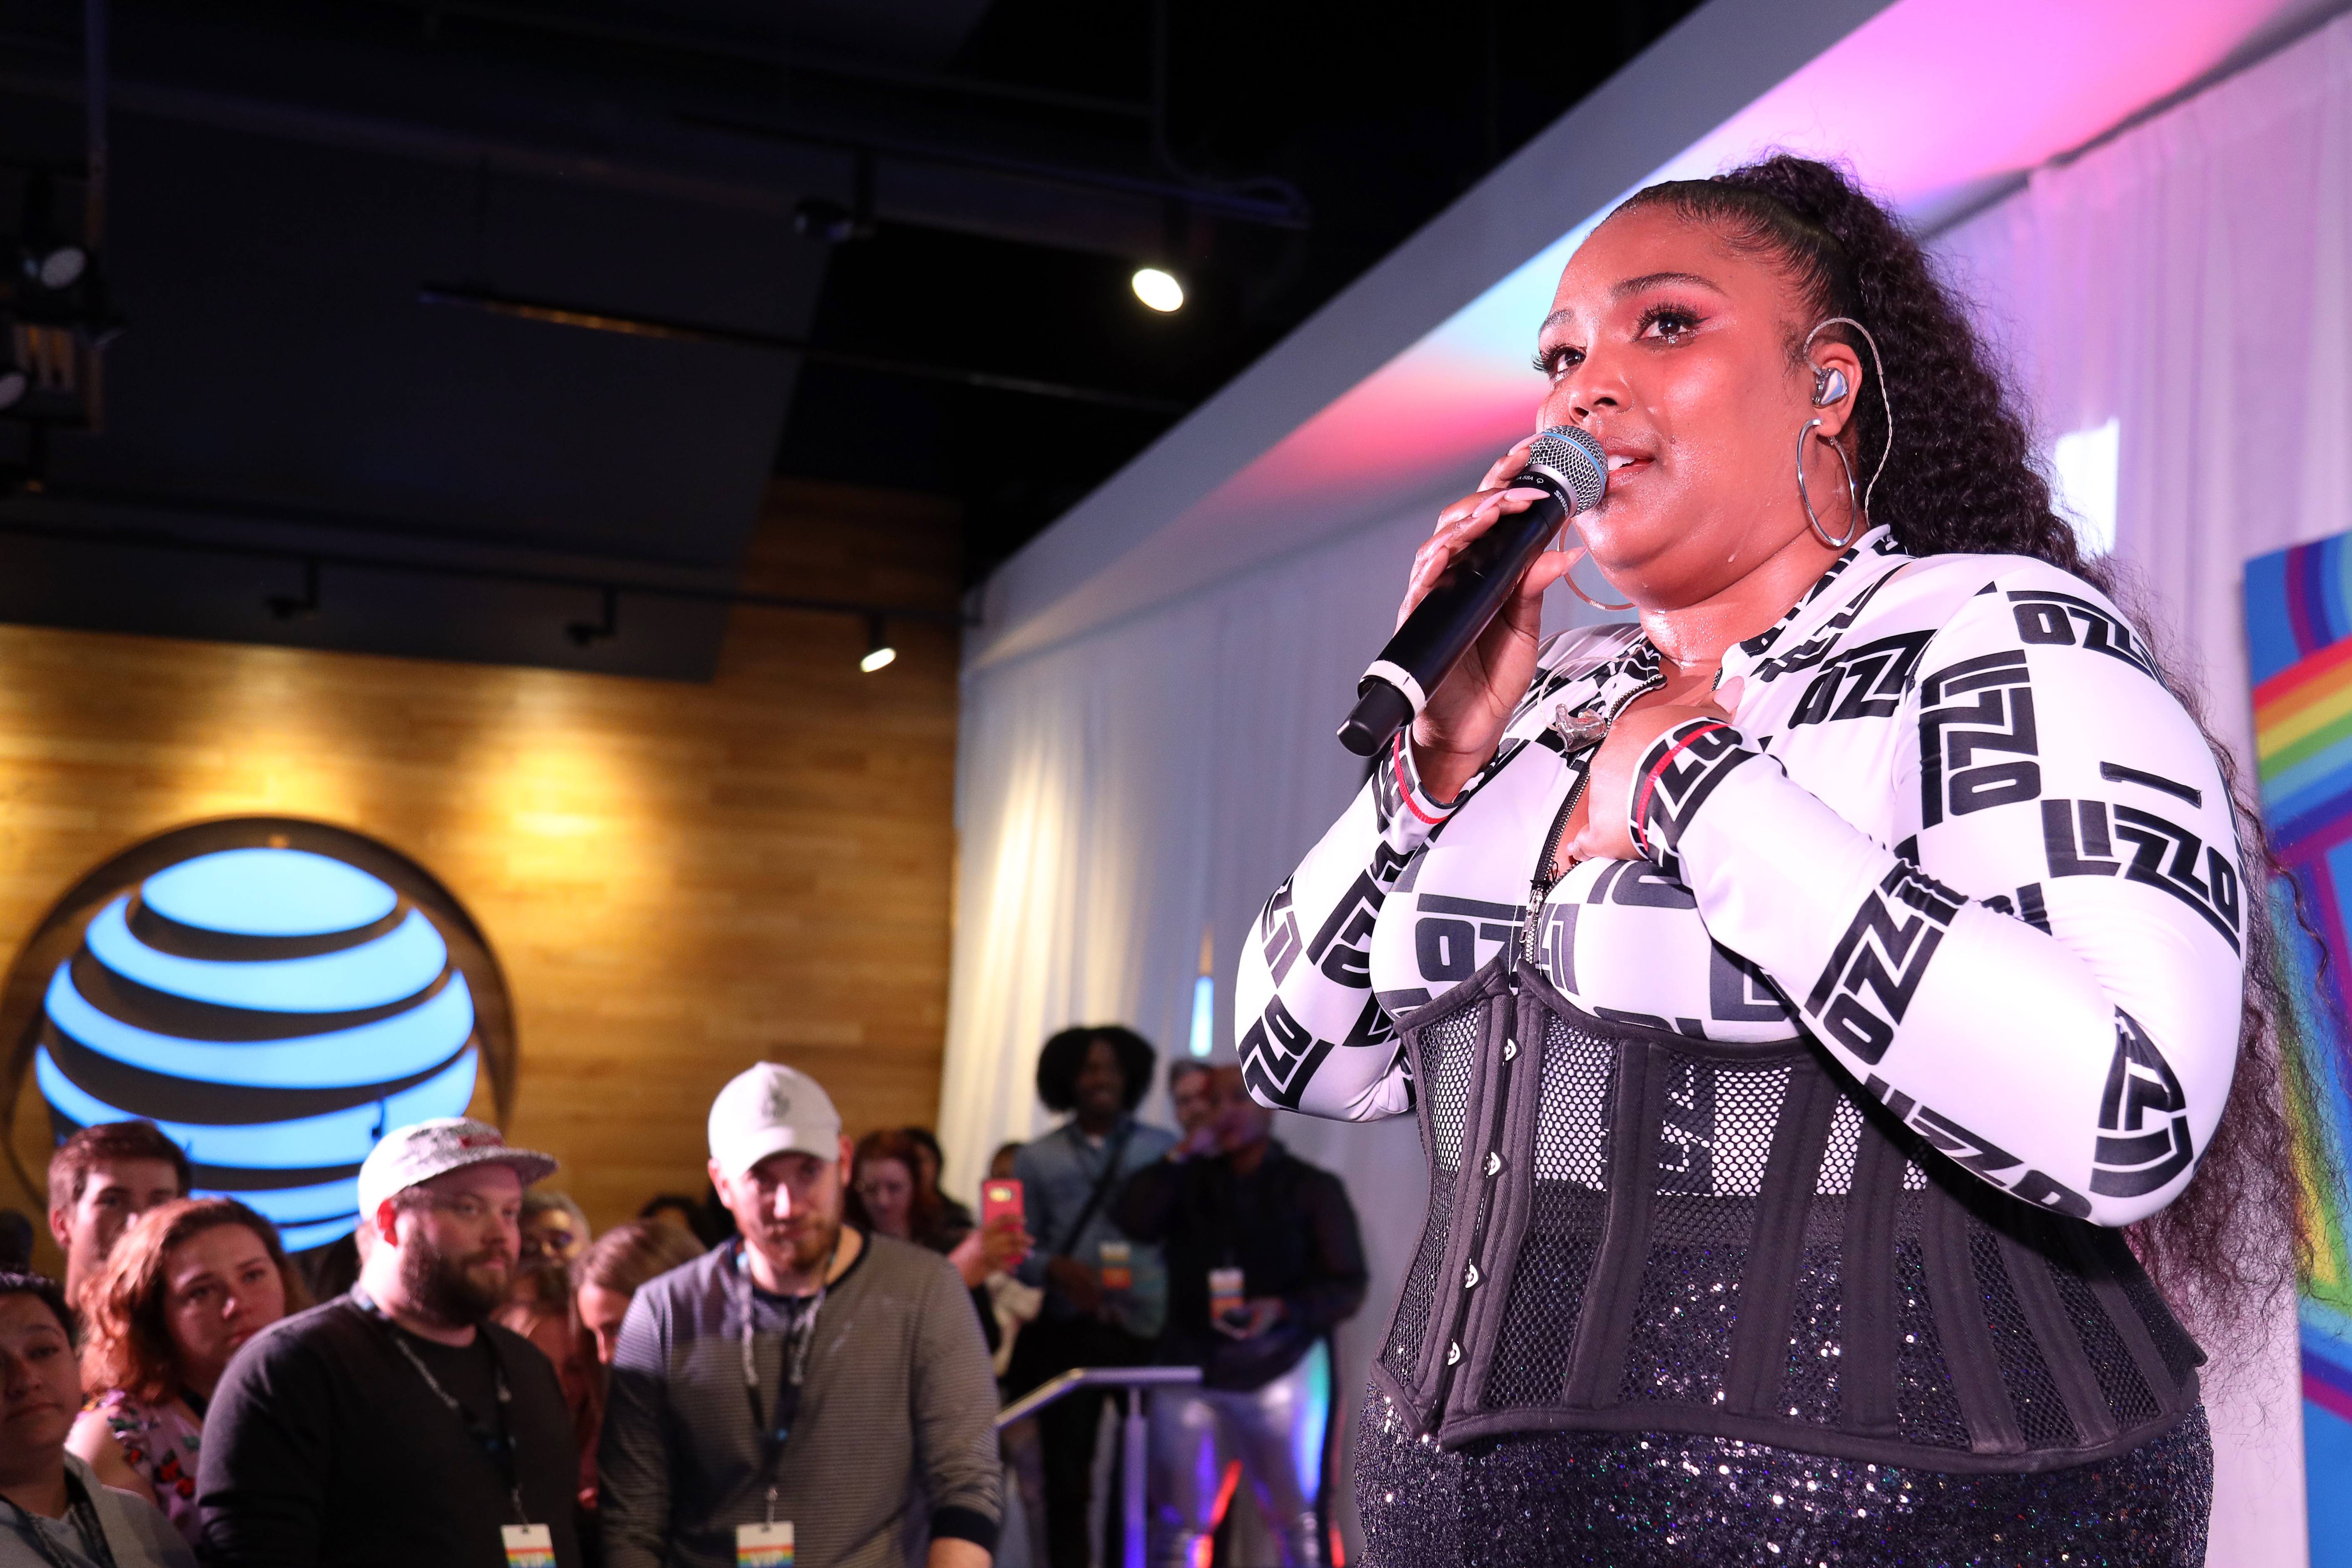 Lizzo on Stage at Chicago event at AT&T Michigan Ave flagship store